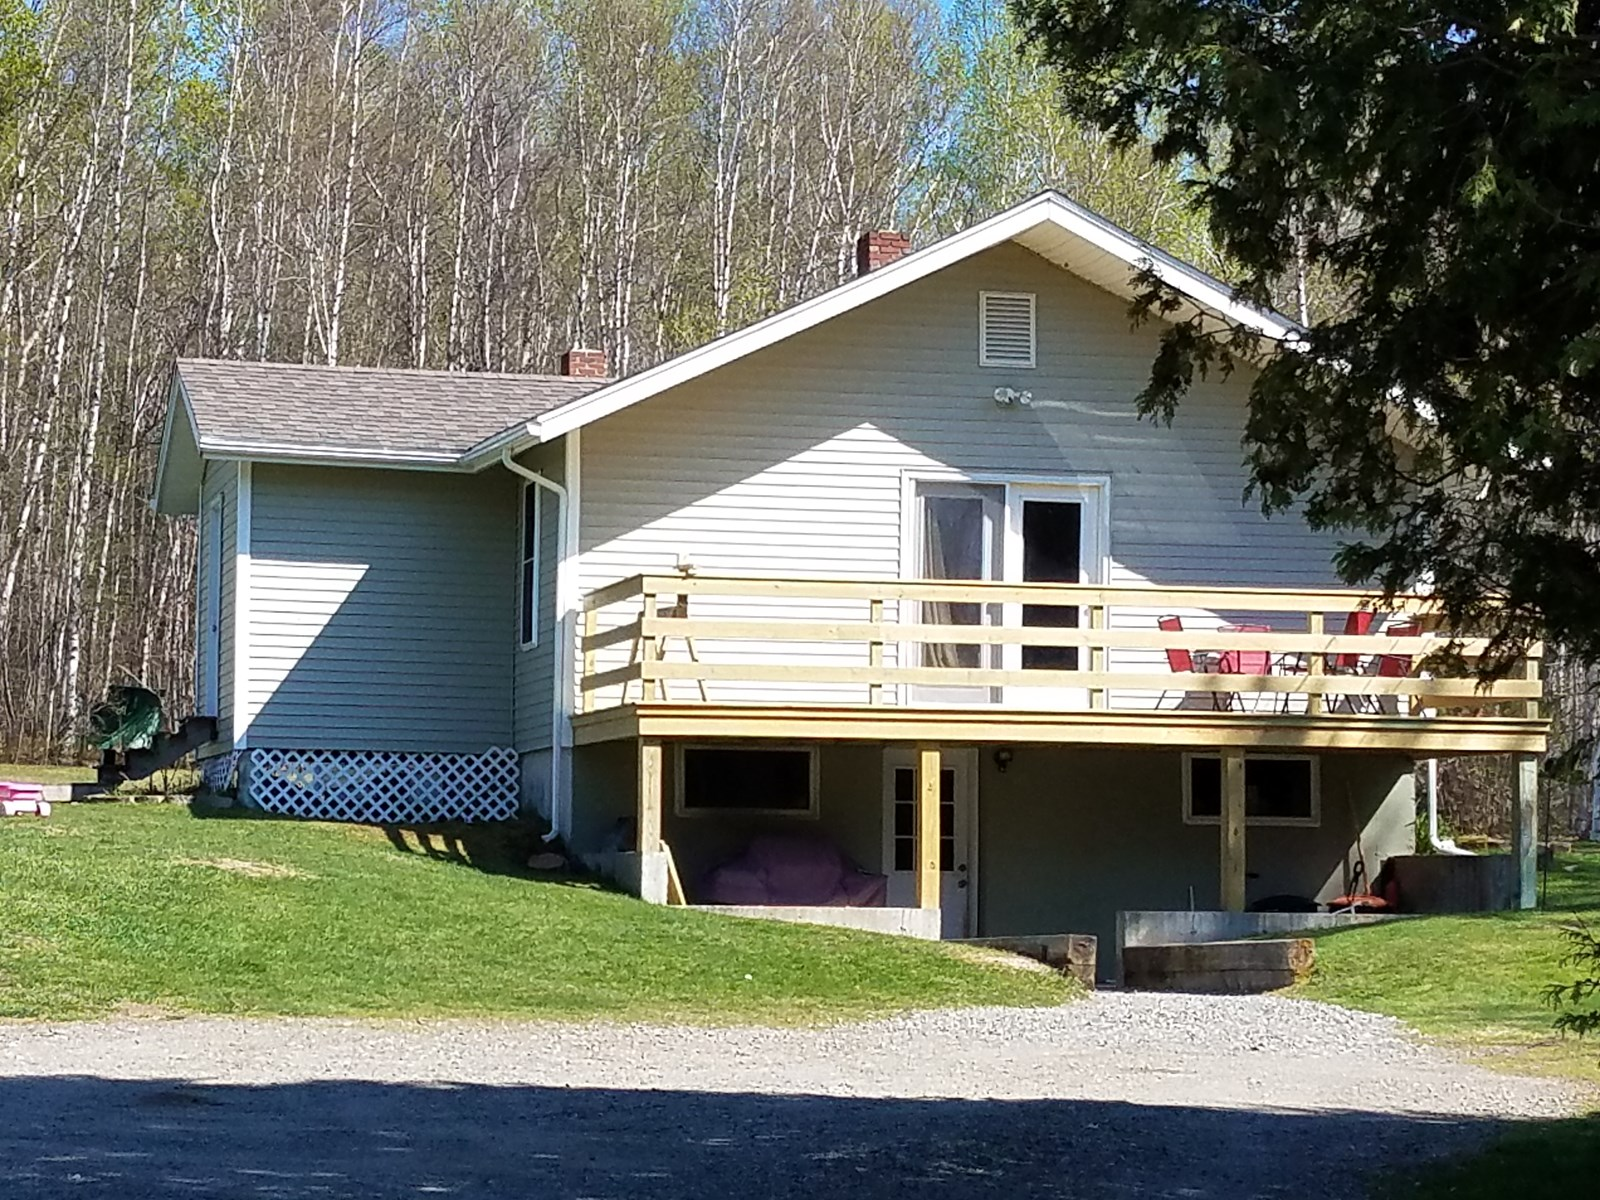 Country Home for Sale in Lincoln, Maine